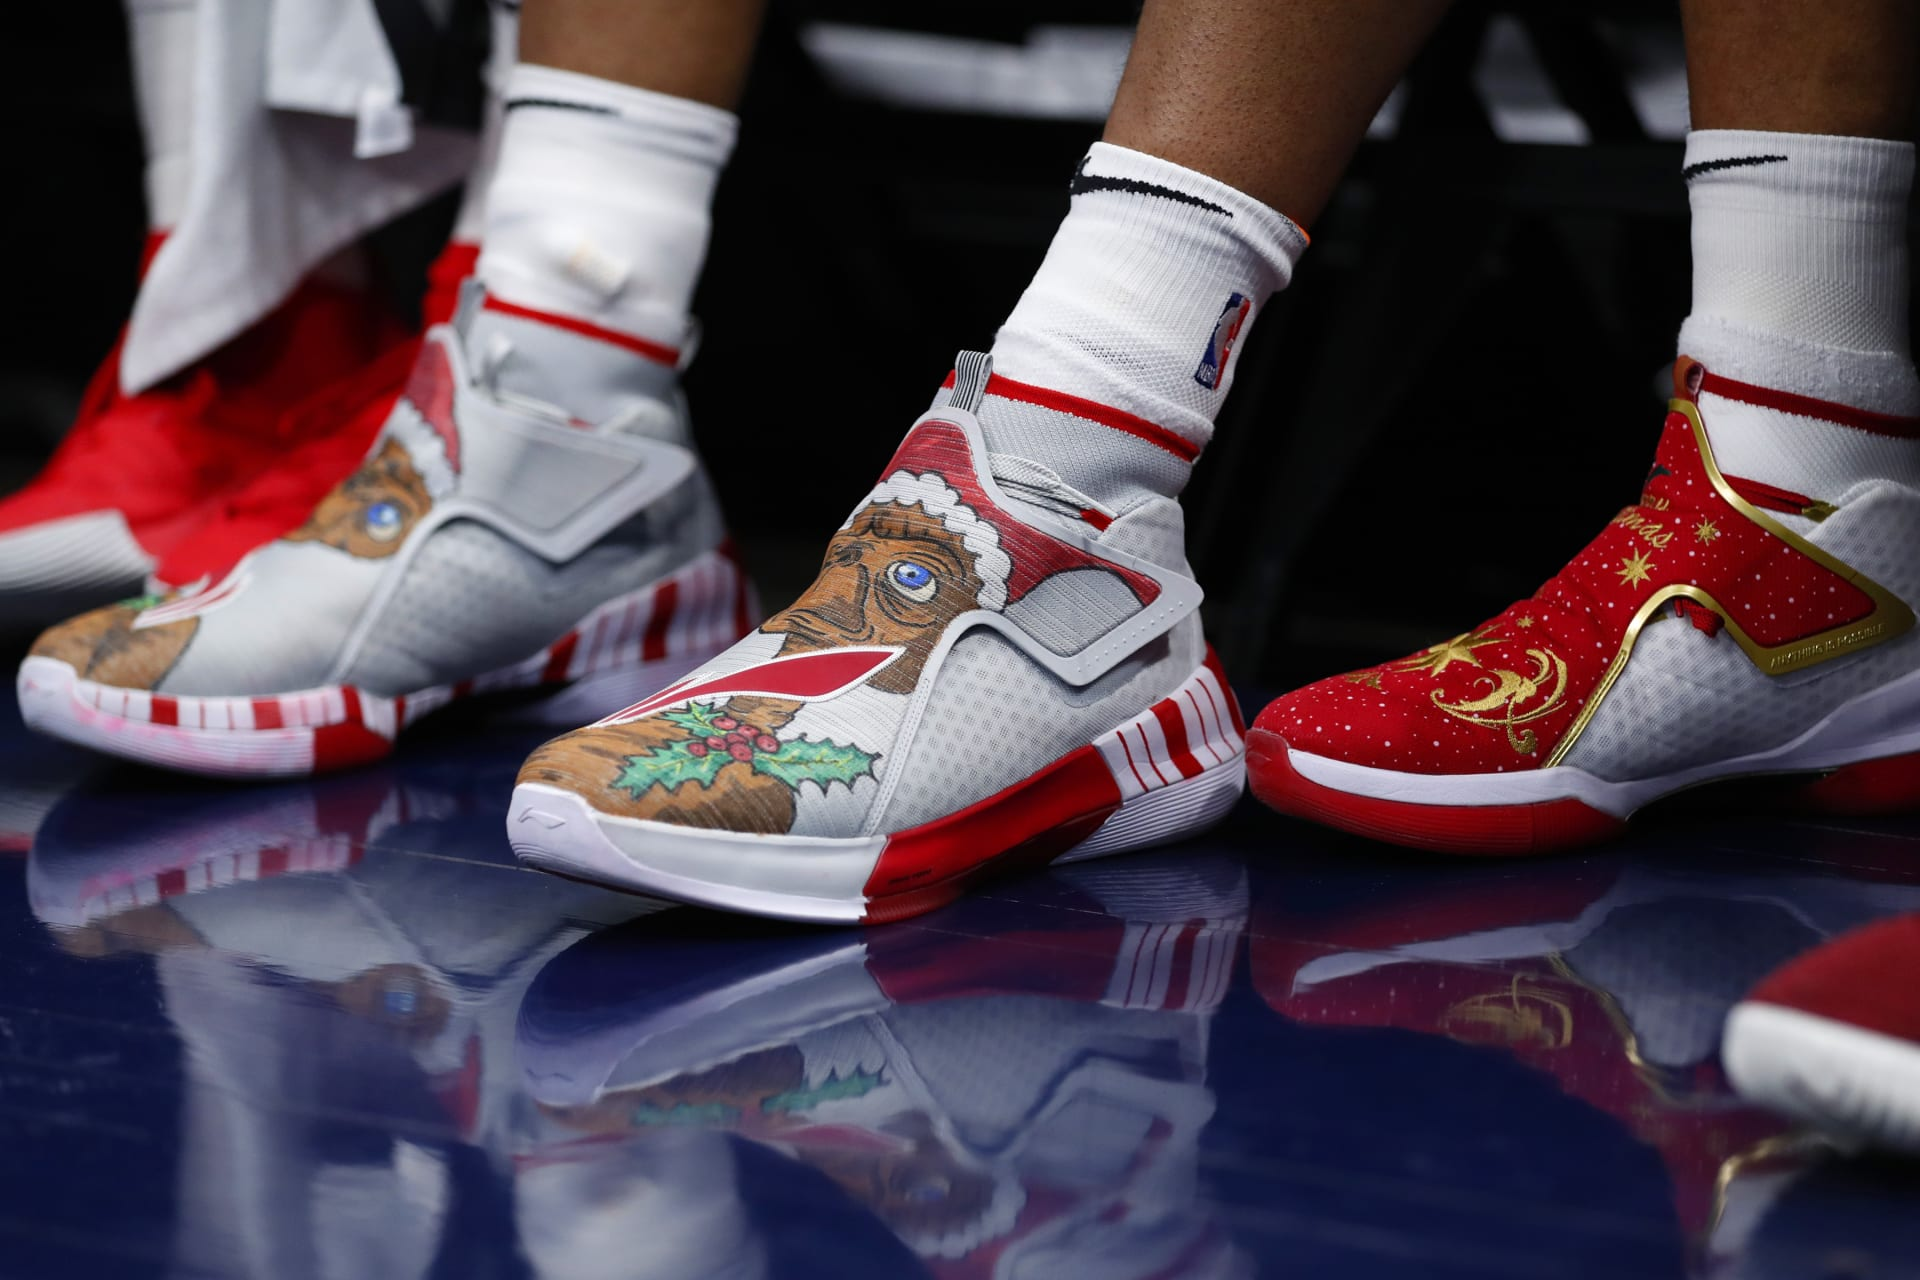 Christmas Shoe.Nba Christmas Shoes Best Sneakers Worn On Christmas Day